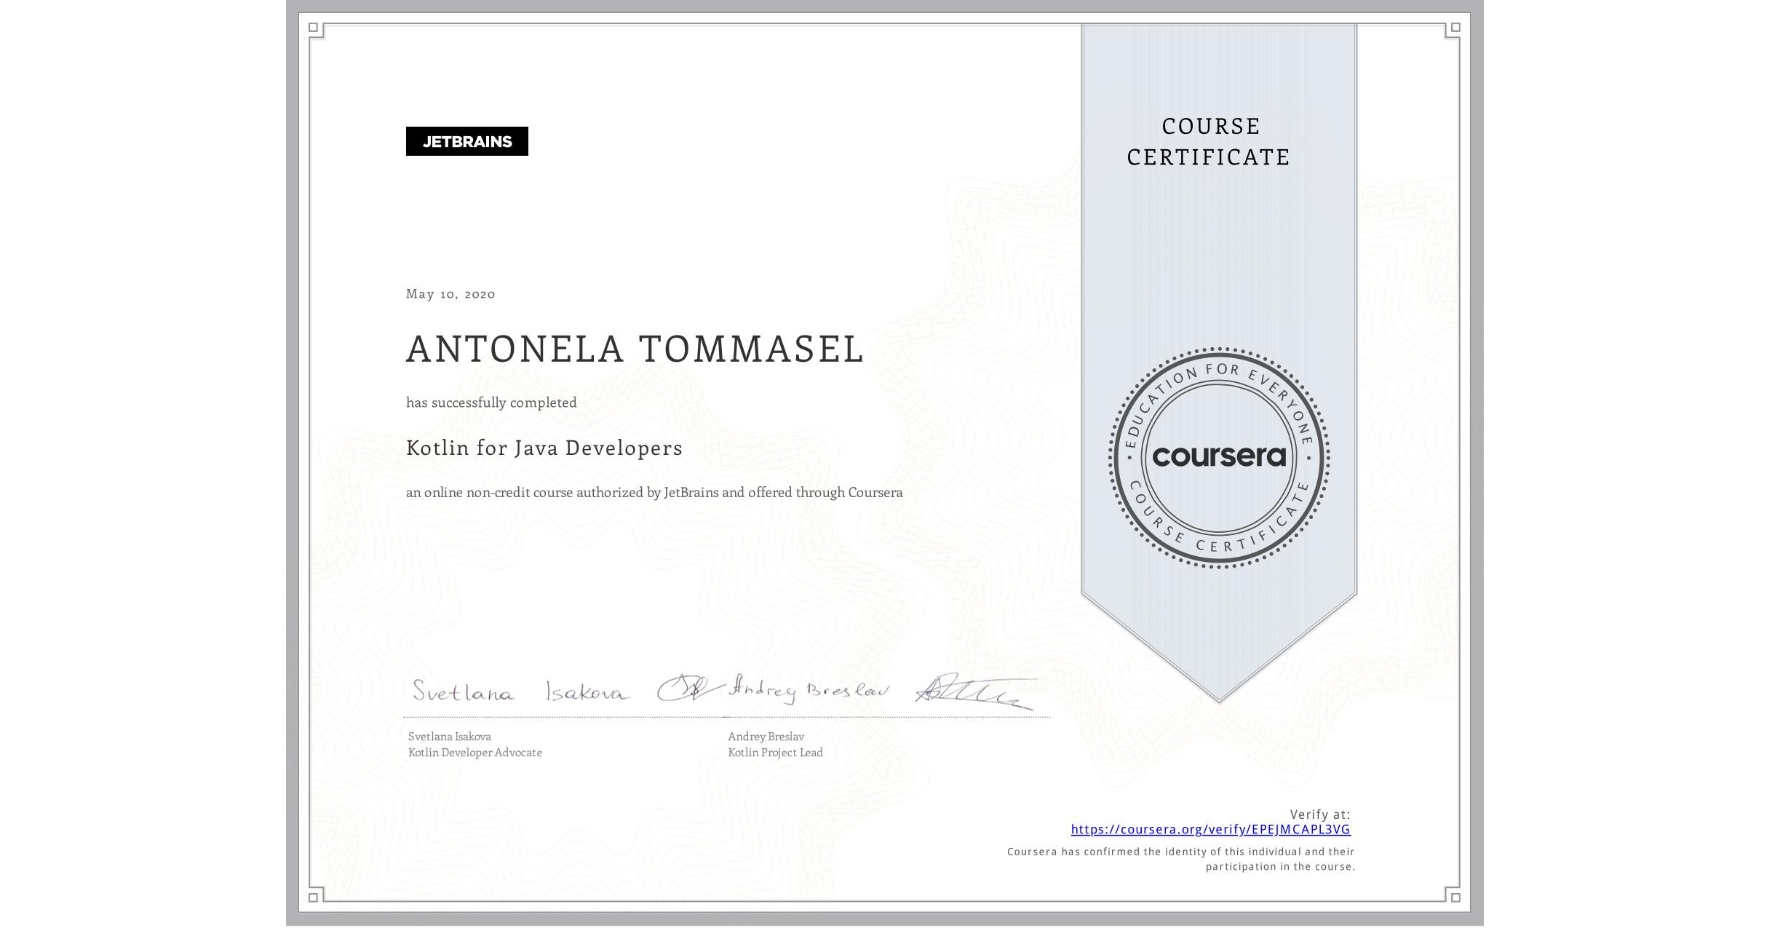 View certificate for Antonela Tommasel, Kotlin for Java Developers, an online non-credit course authorized by JetBrains and offered through Coursera